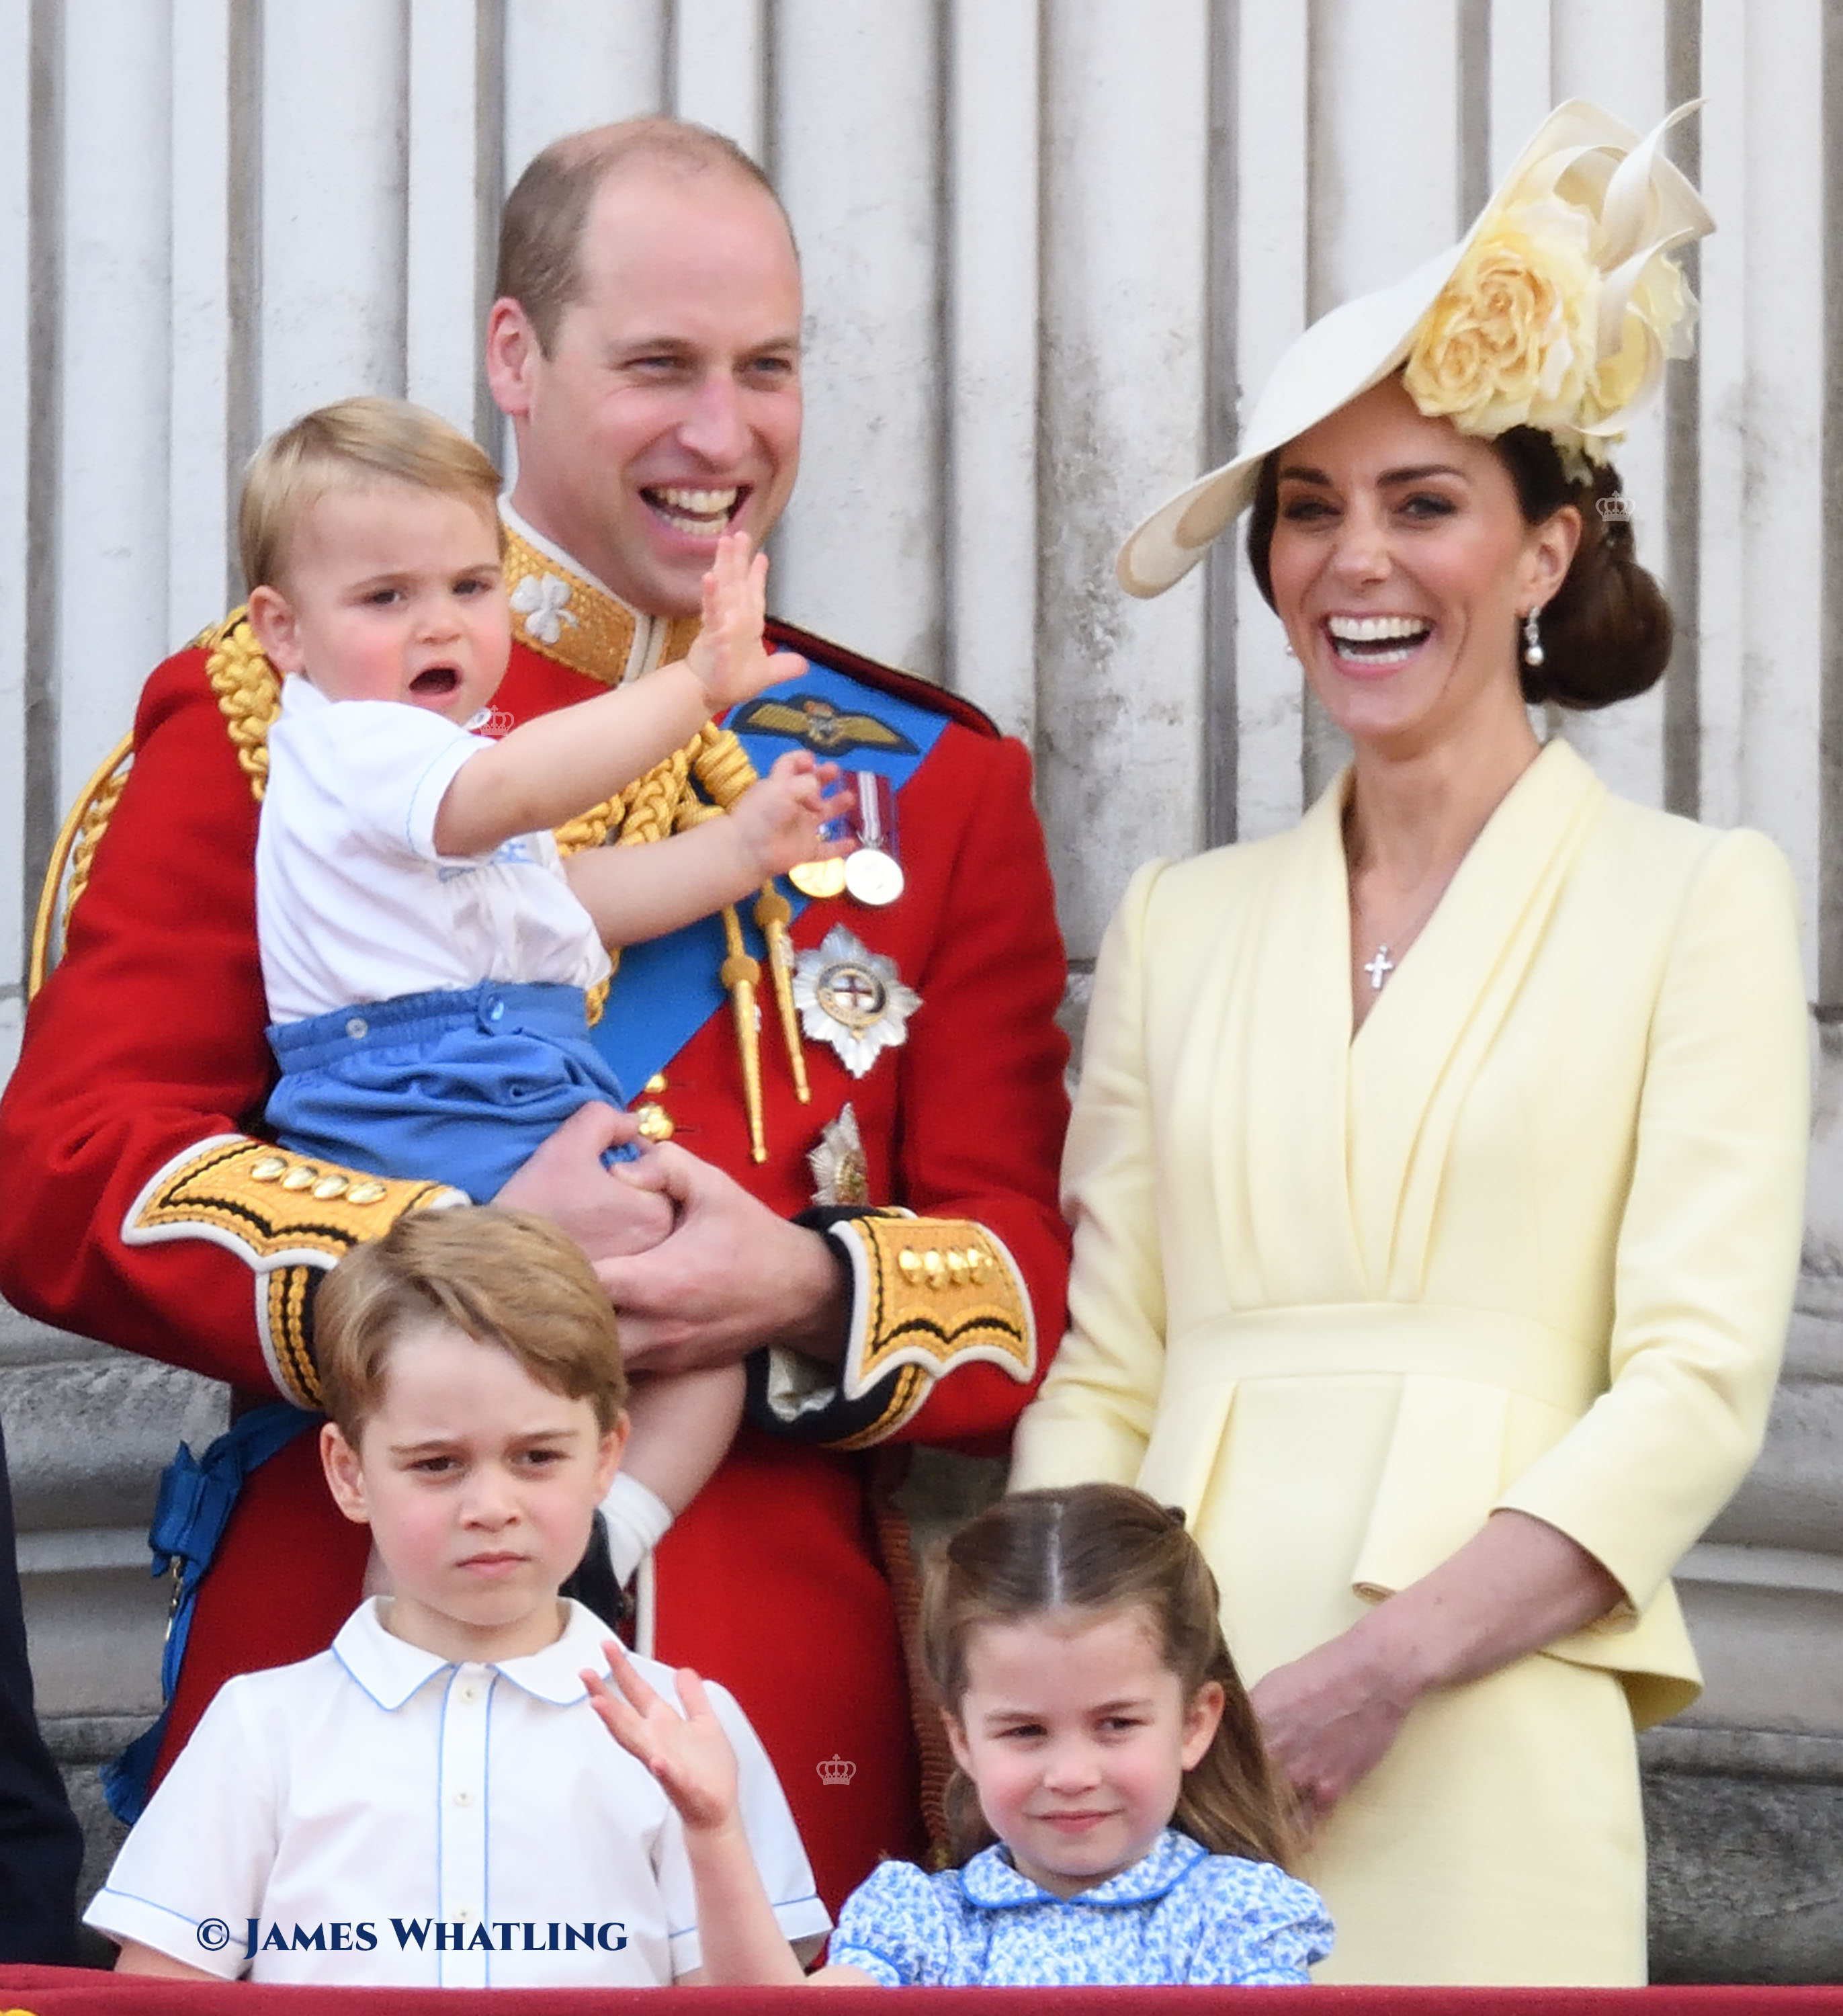 Prince William on the incredible but Scary Experience of Being a Father